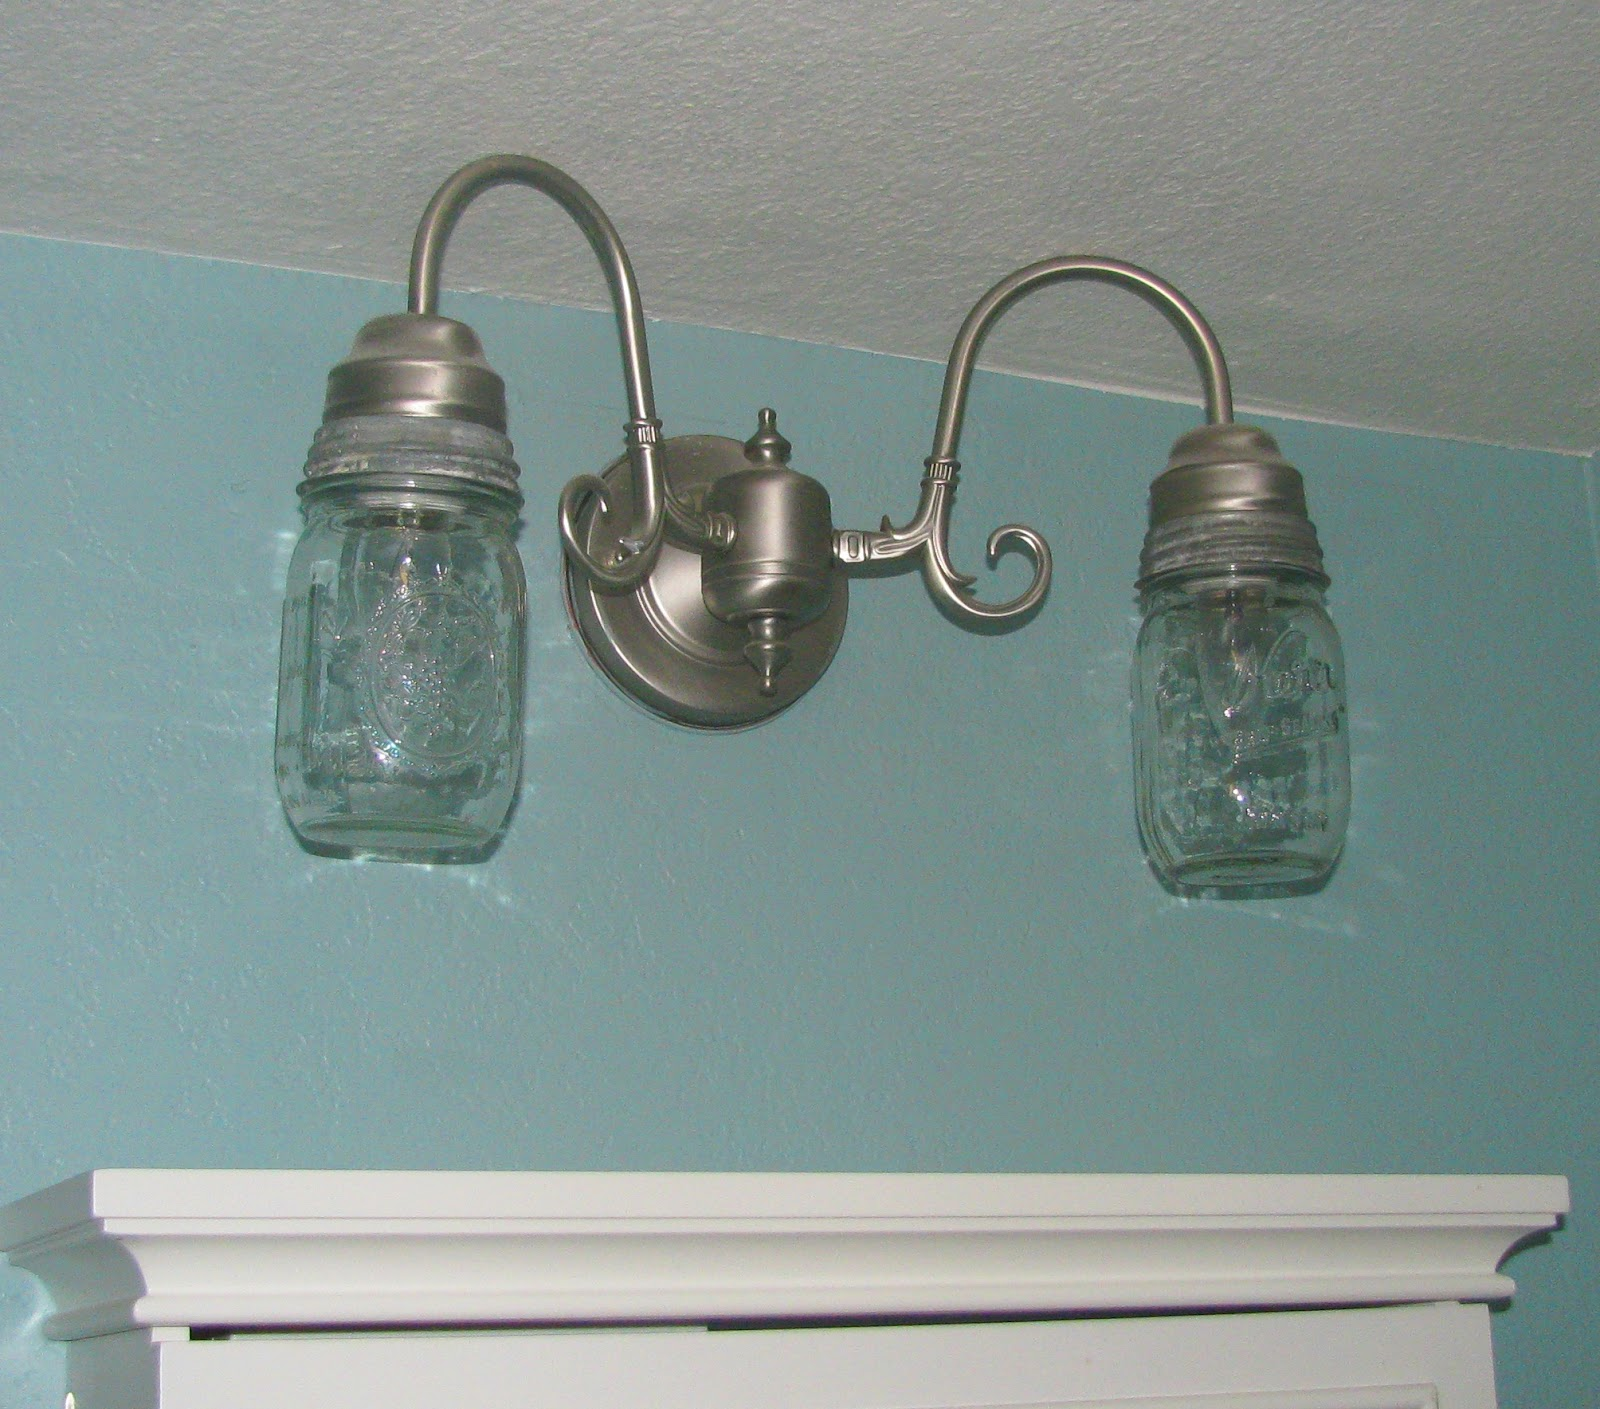 Light Fixtures Over Sink: 20 Practical & Pretty Powder Room Decorating Ideas